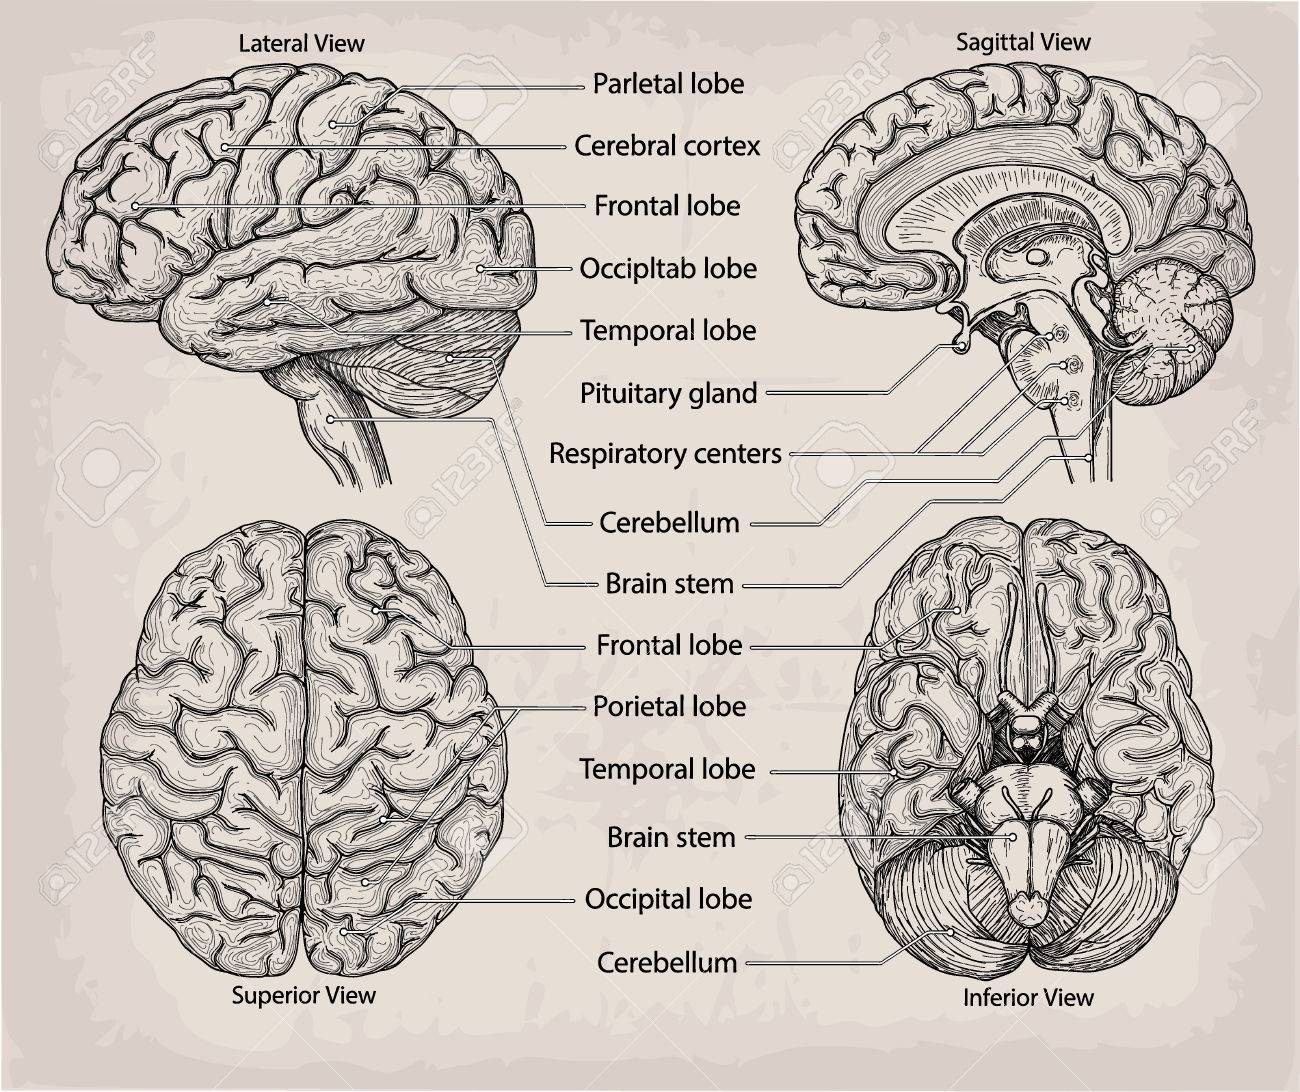 Detailed Brain Anatomy Images - human body anatomy